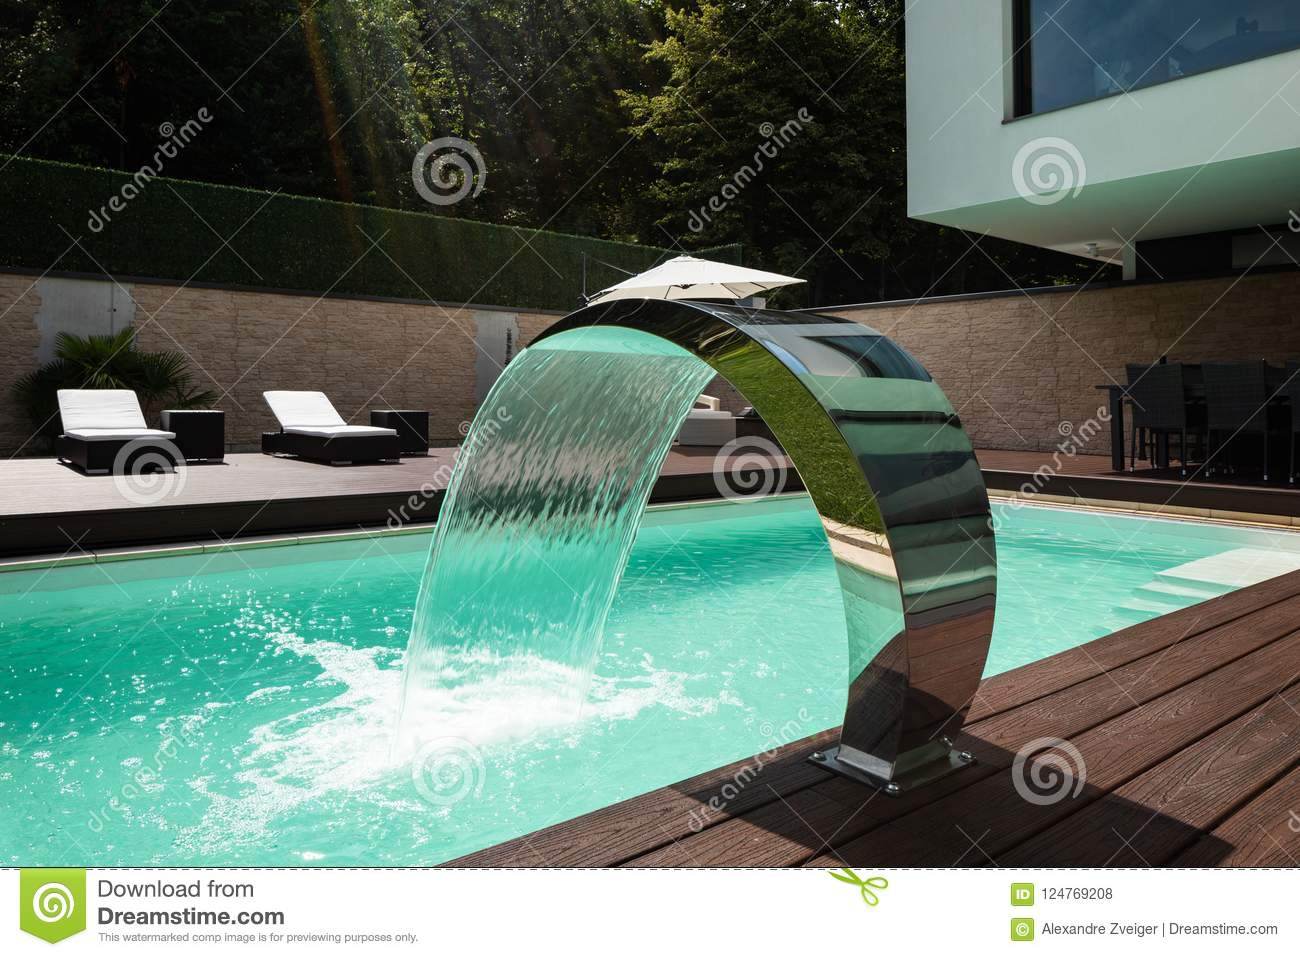 Pool fountain stock images download 14 687 photos for Wetherby swimming pool swim times